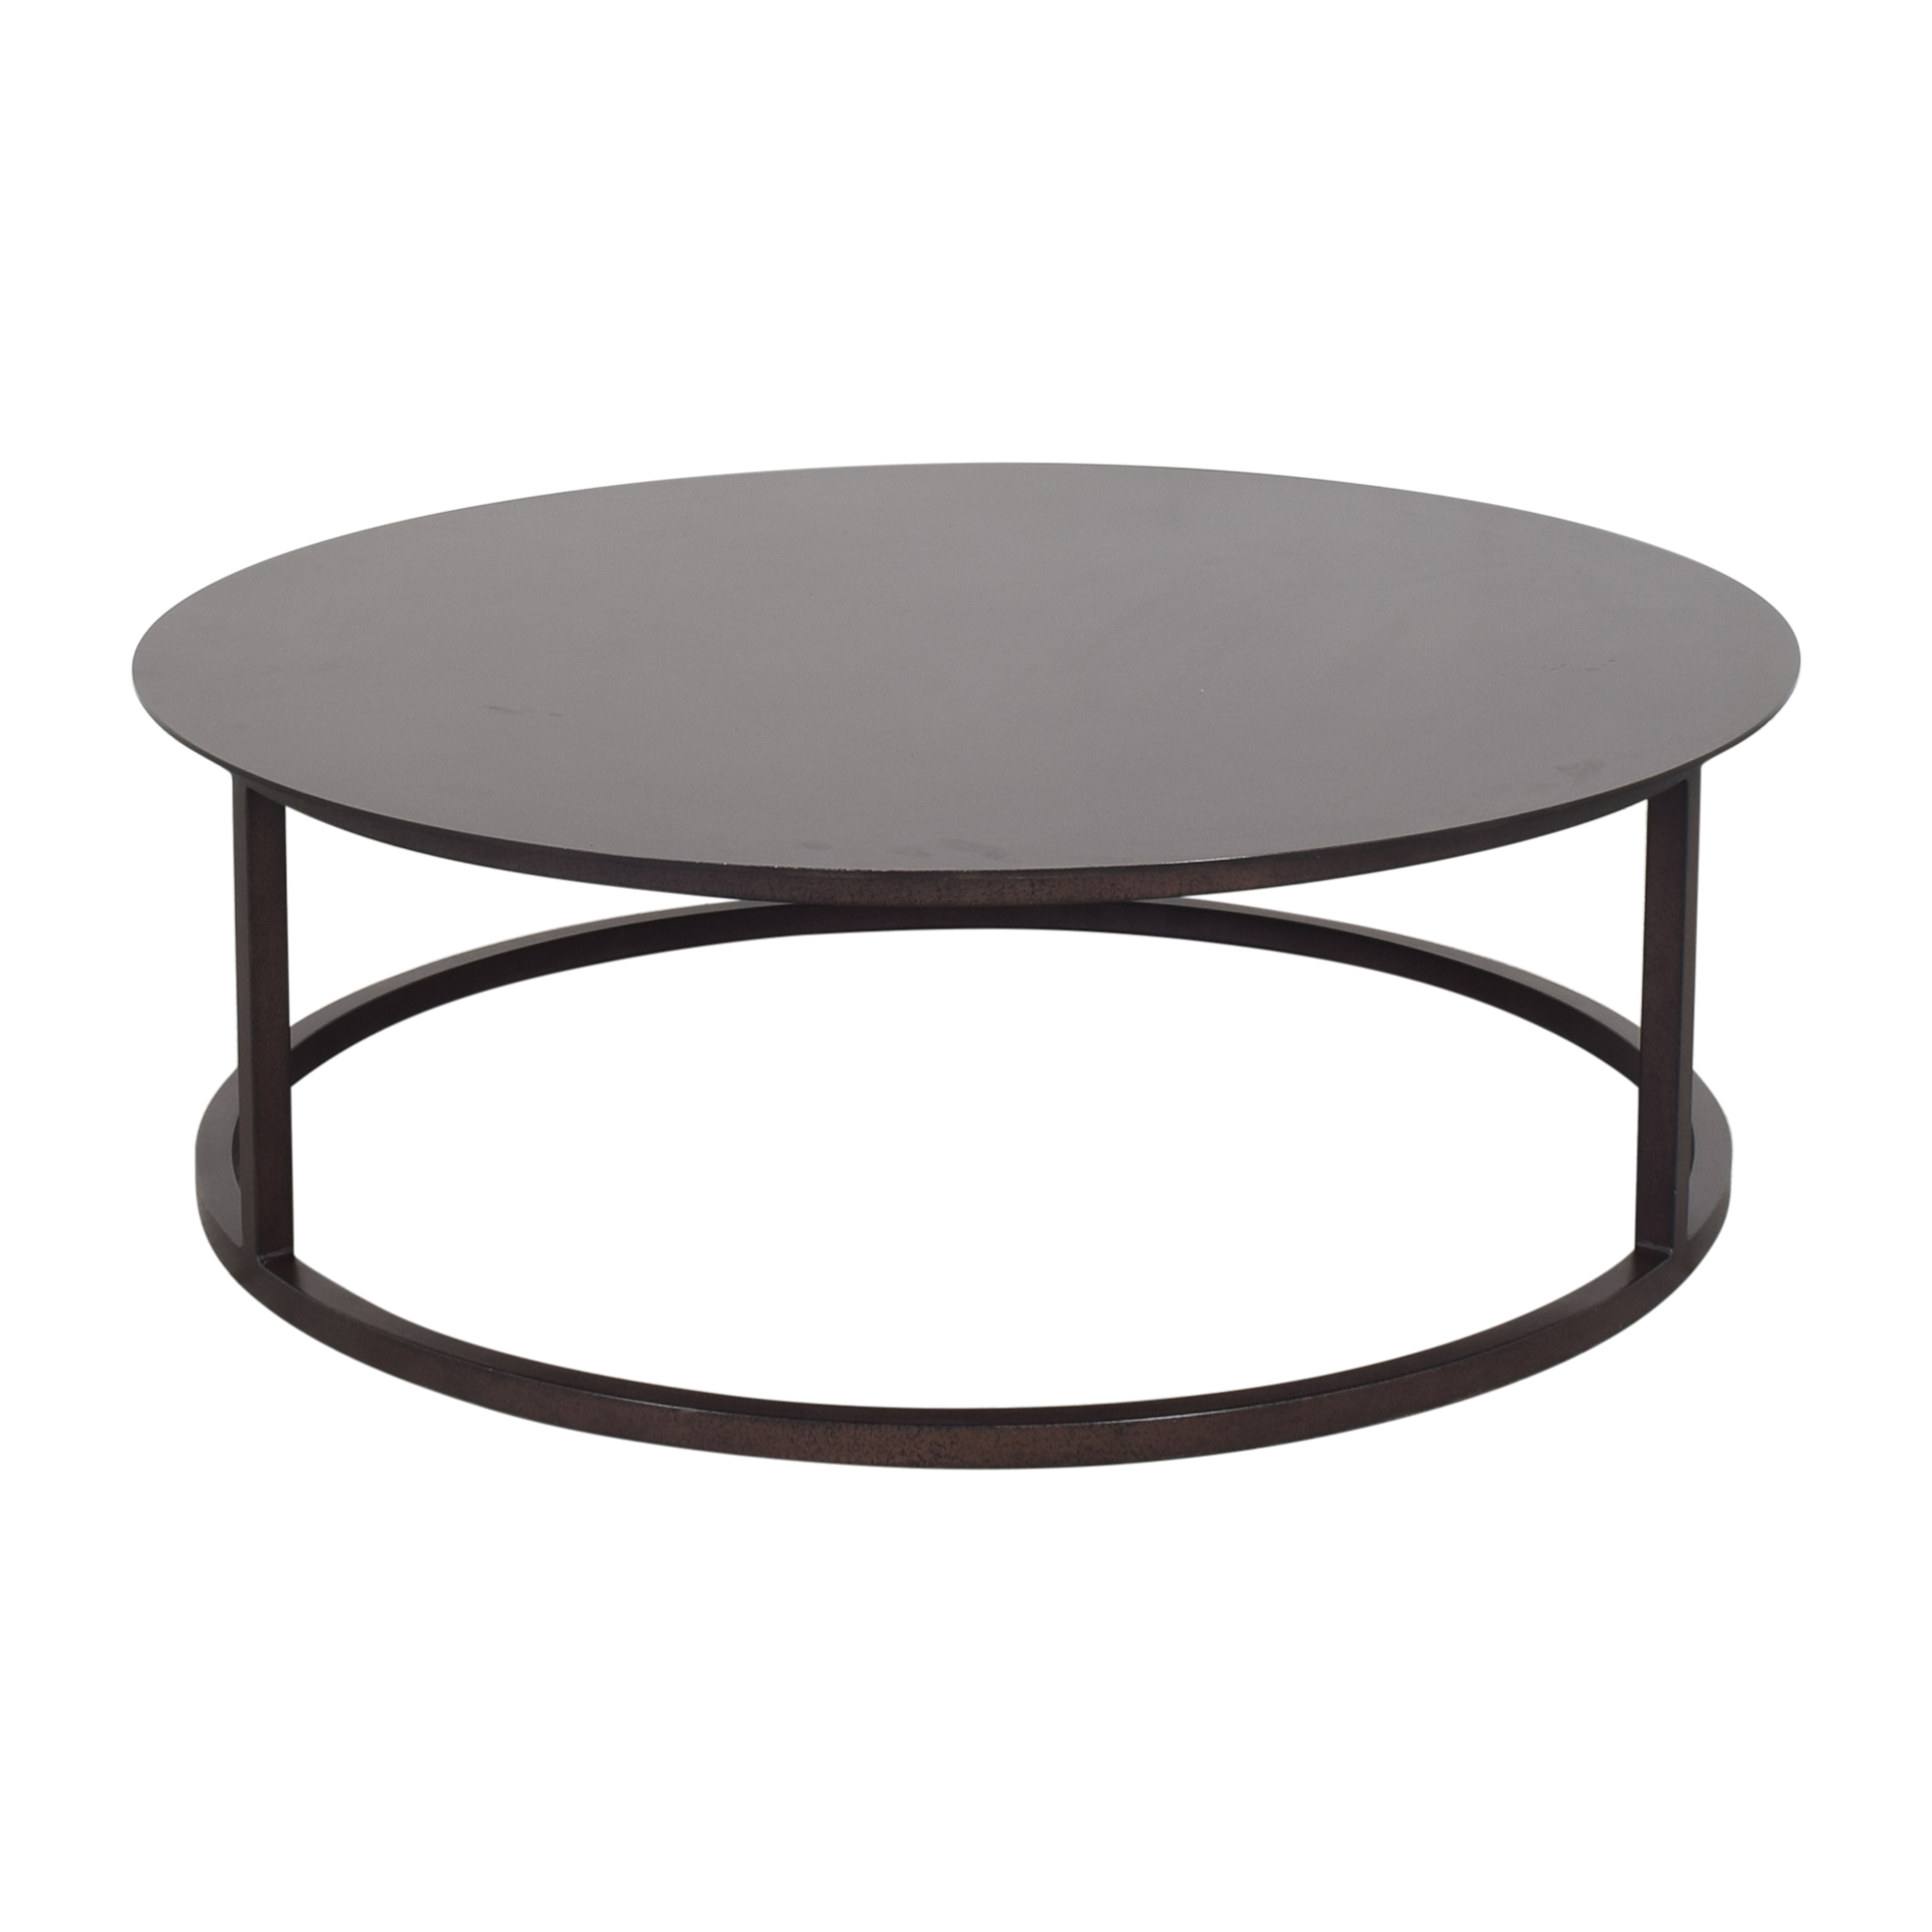 Restoration Hardware Restoration Hardware Round Mercer Coffee Table pa